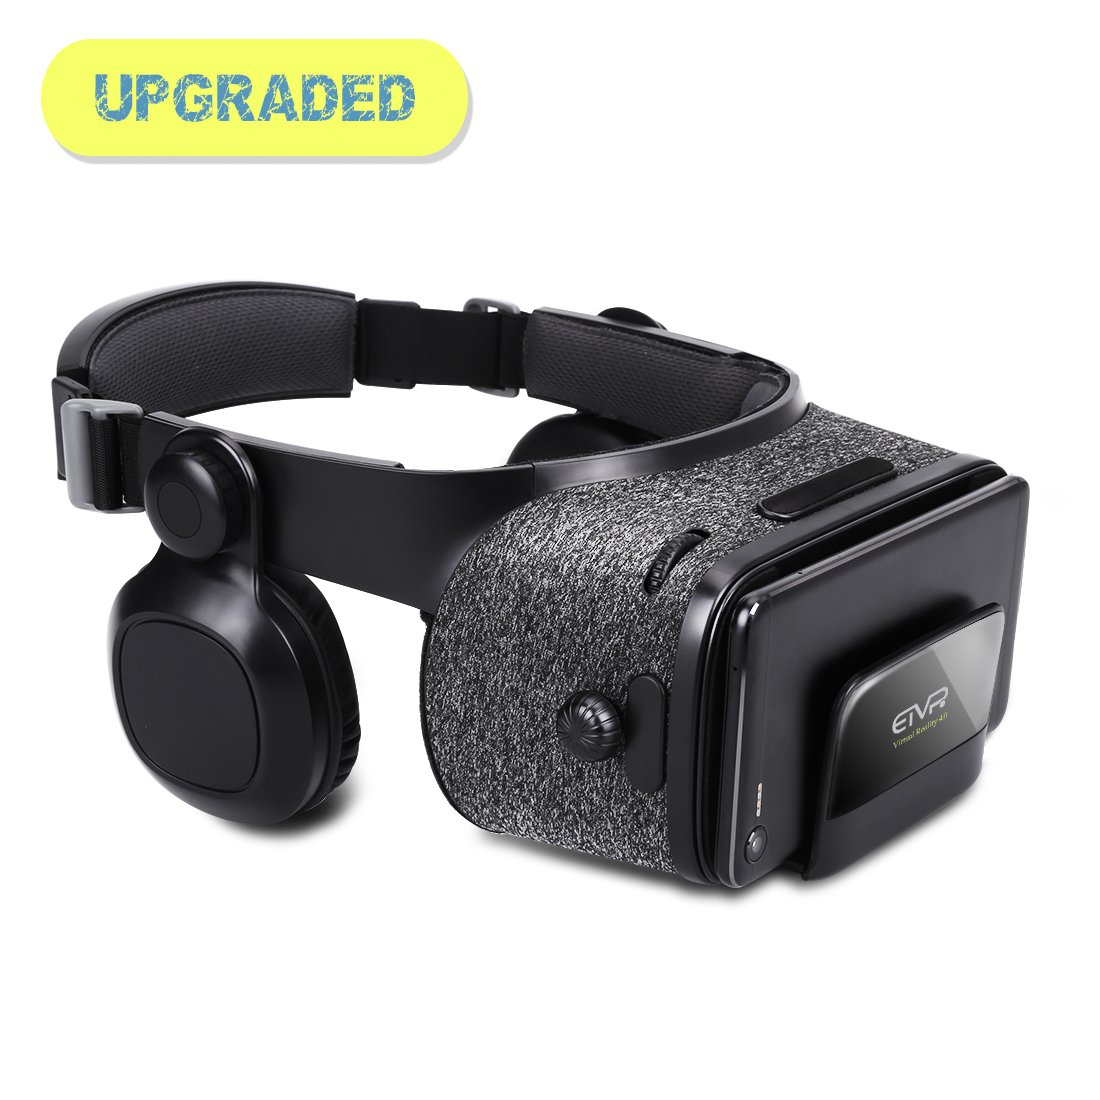 3D VR Headset - Virtual Reality Headset for VR Games & 3D Movies with Stereo Headphones, Adjustable Staps, PD & FD for Apple iPhone & Android Smartphones of 4.7'' - 6.2'' - Black